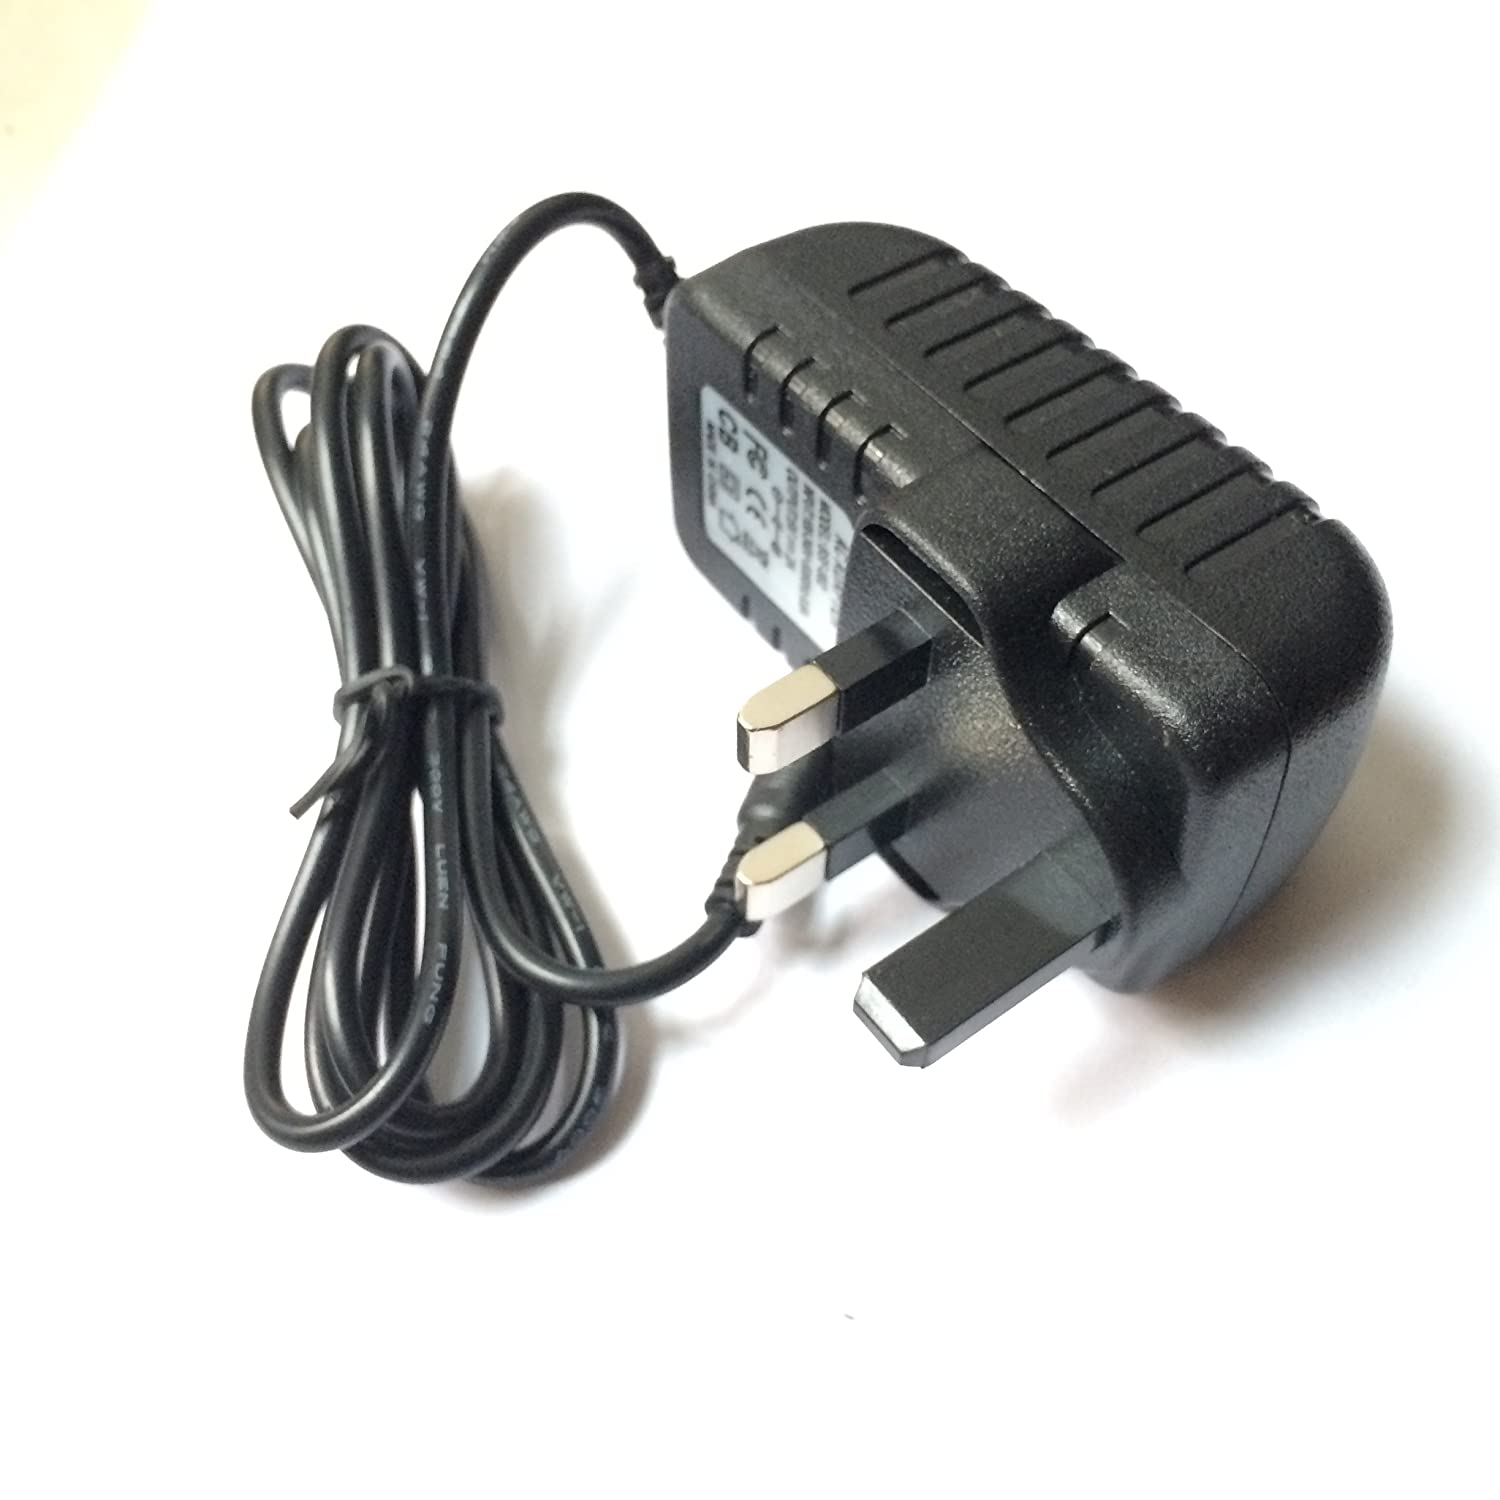 5v 2a Uk Mains Power Adaptor Charger For 7 Inch Tablet Fuhu Nabi 2 Nv7a Computers Accessories